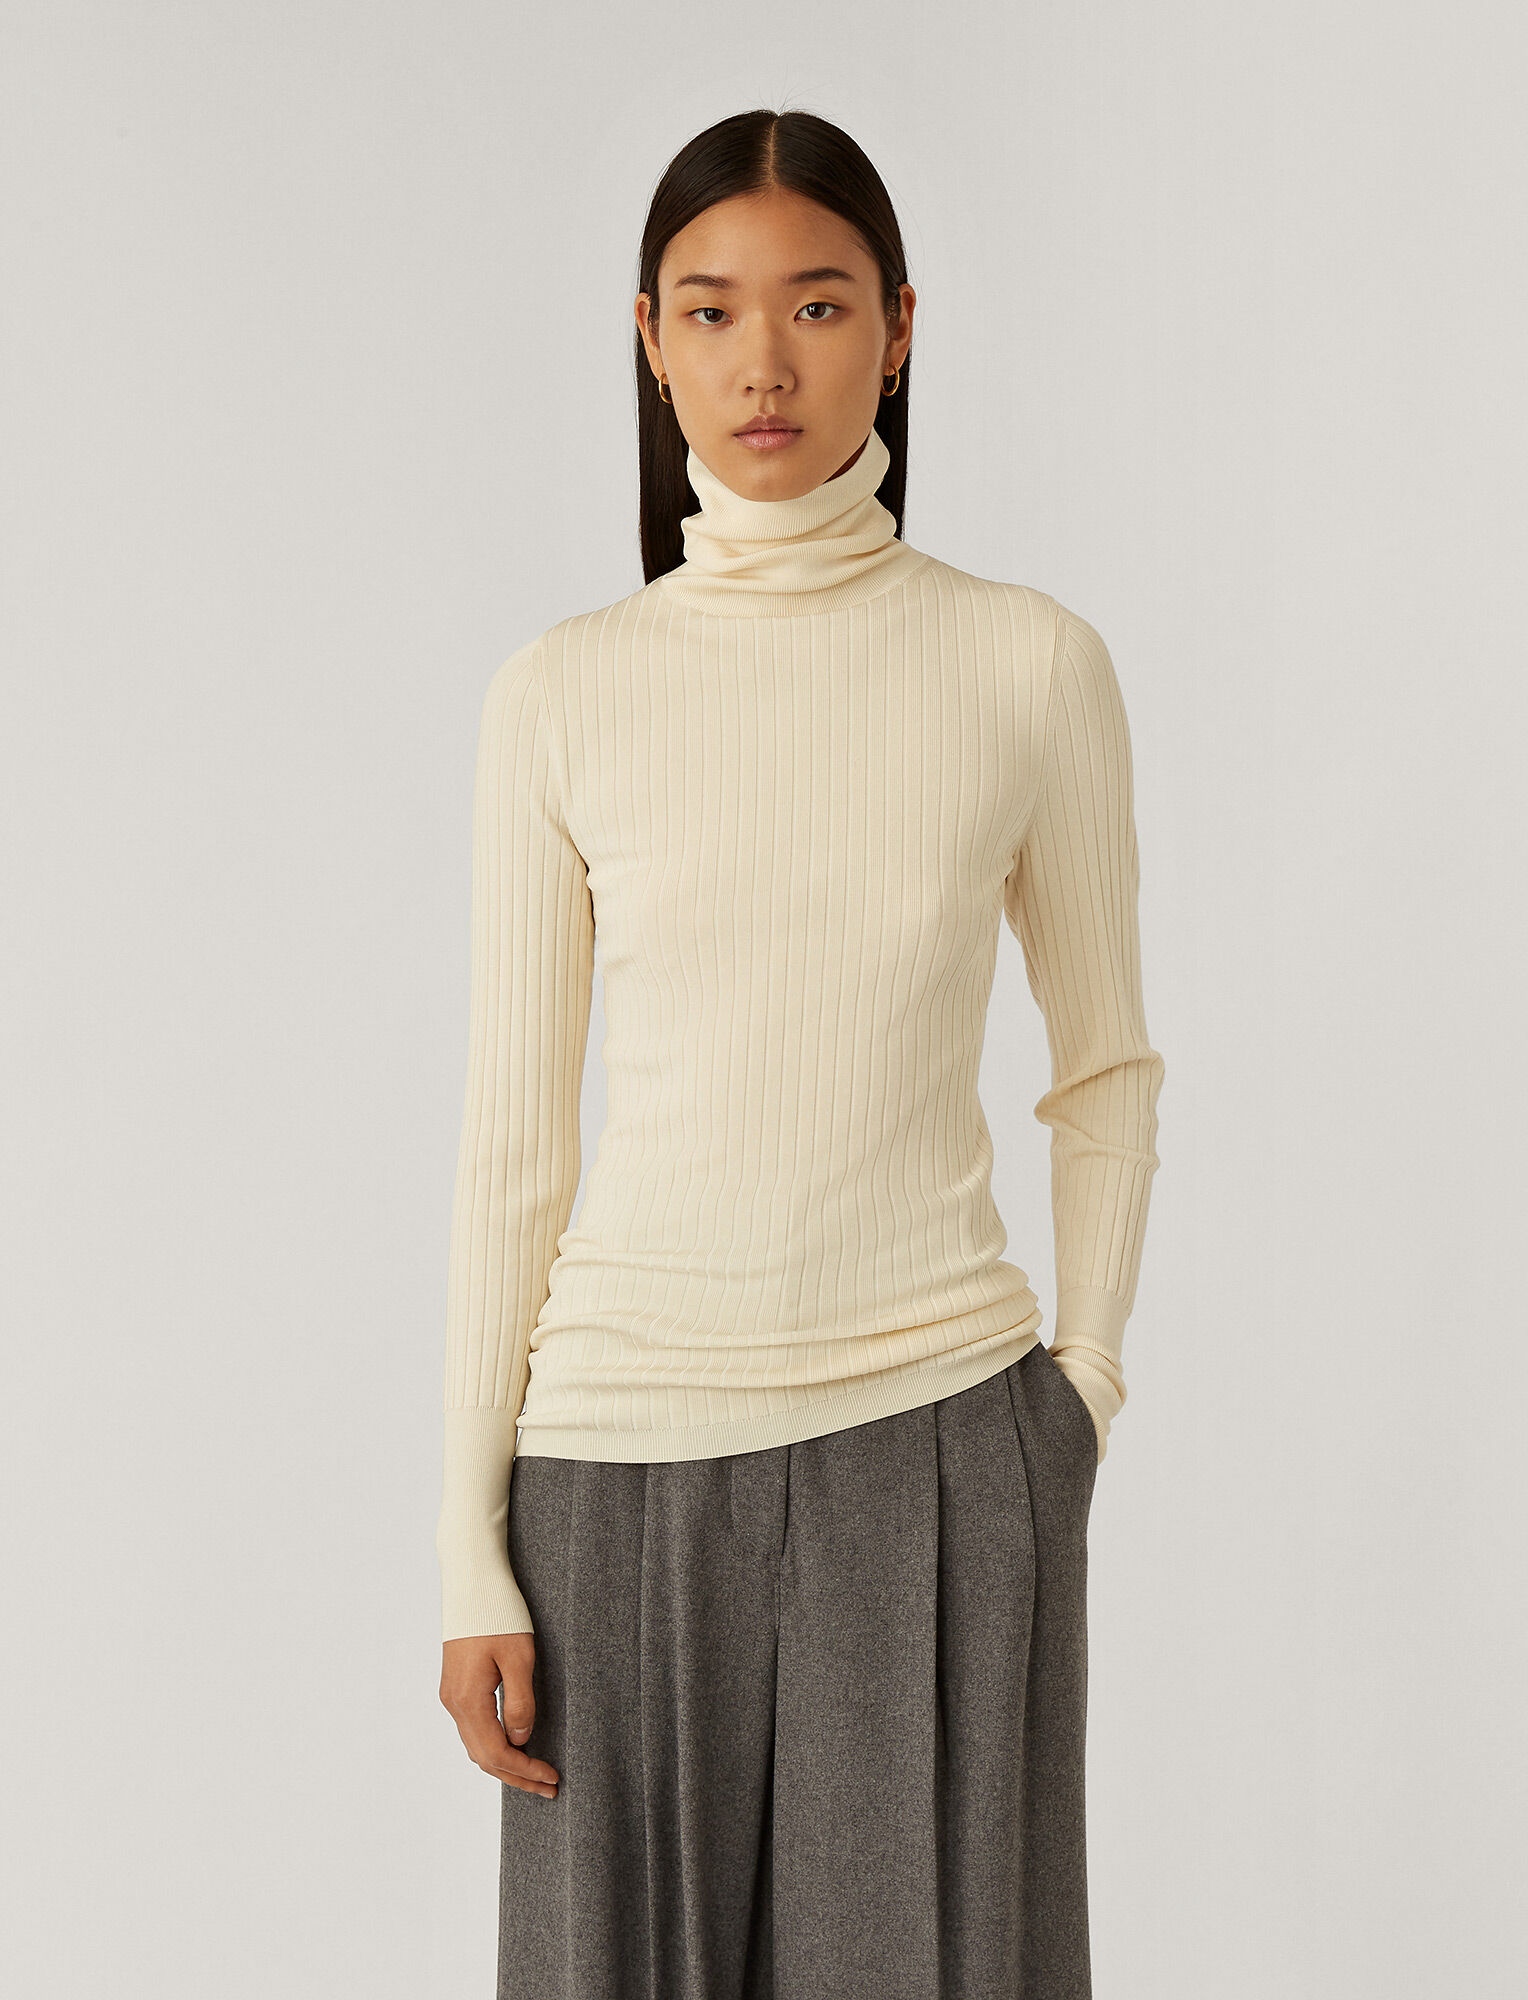 Joseph, High Neck Shiny Knit, in Ivory